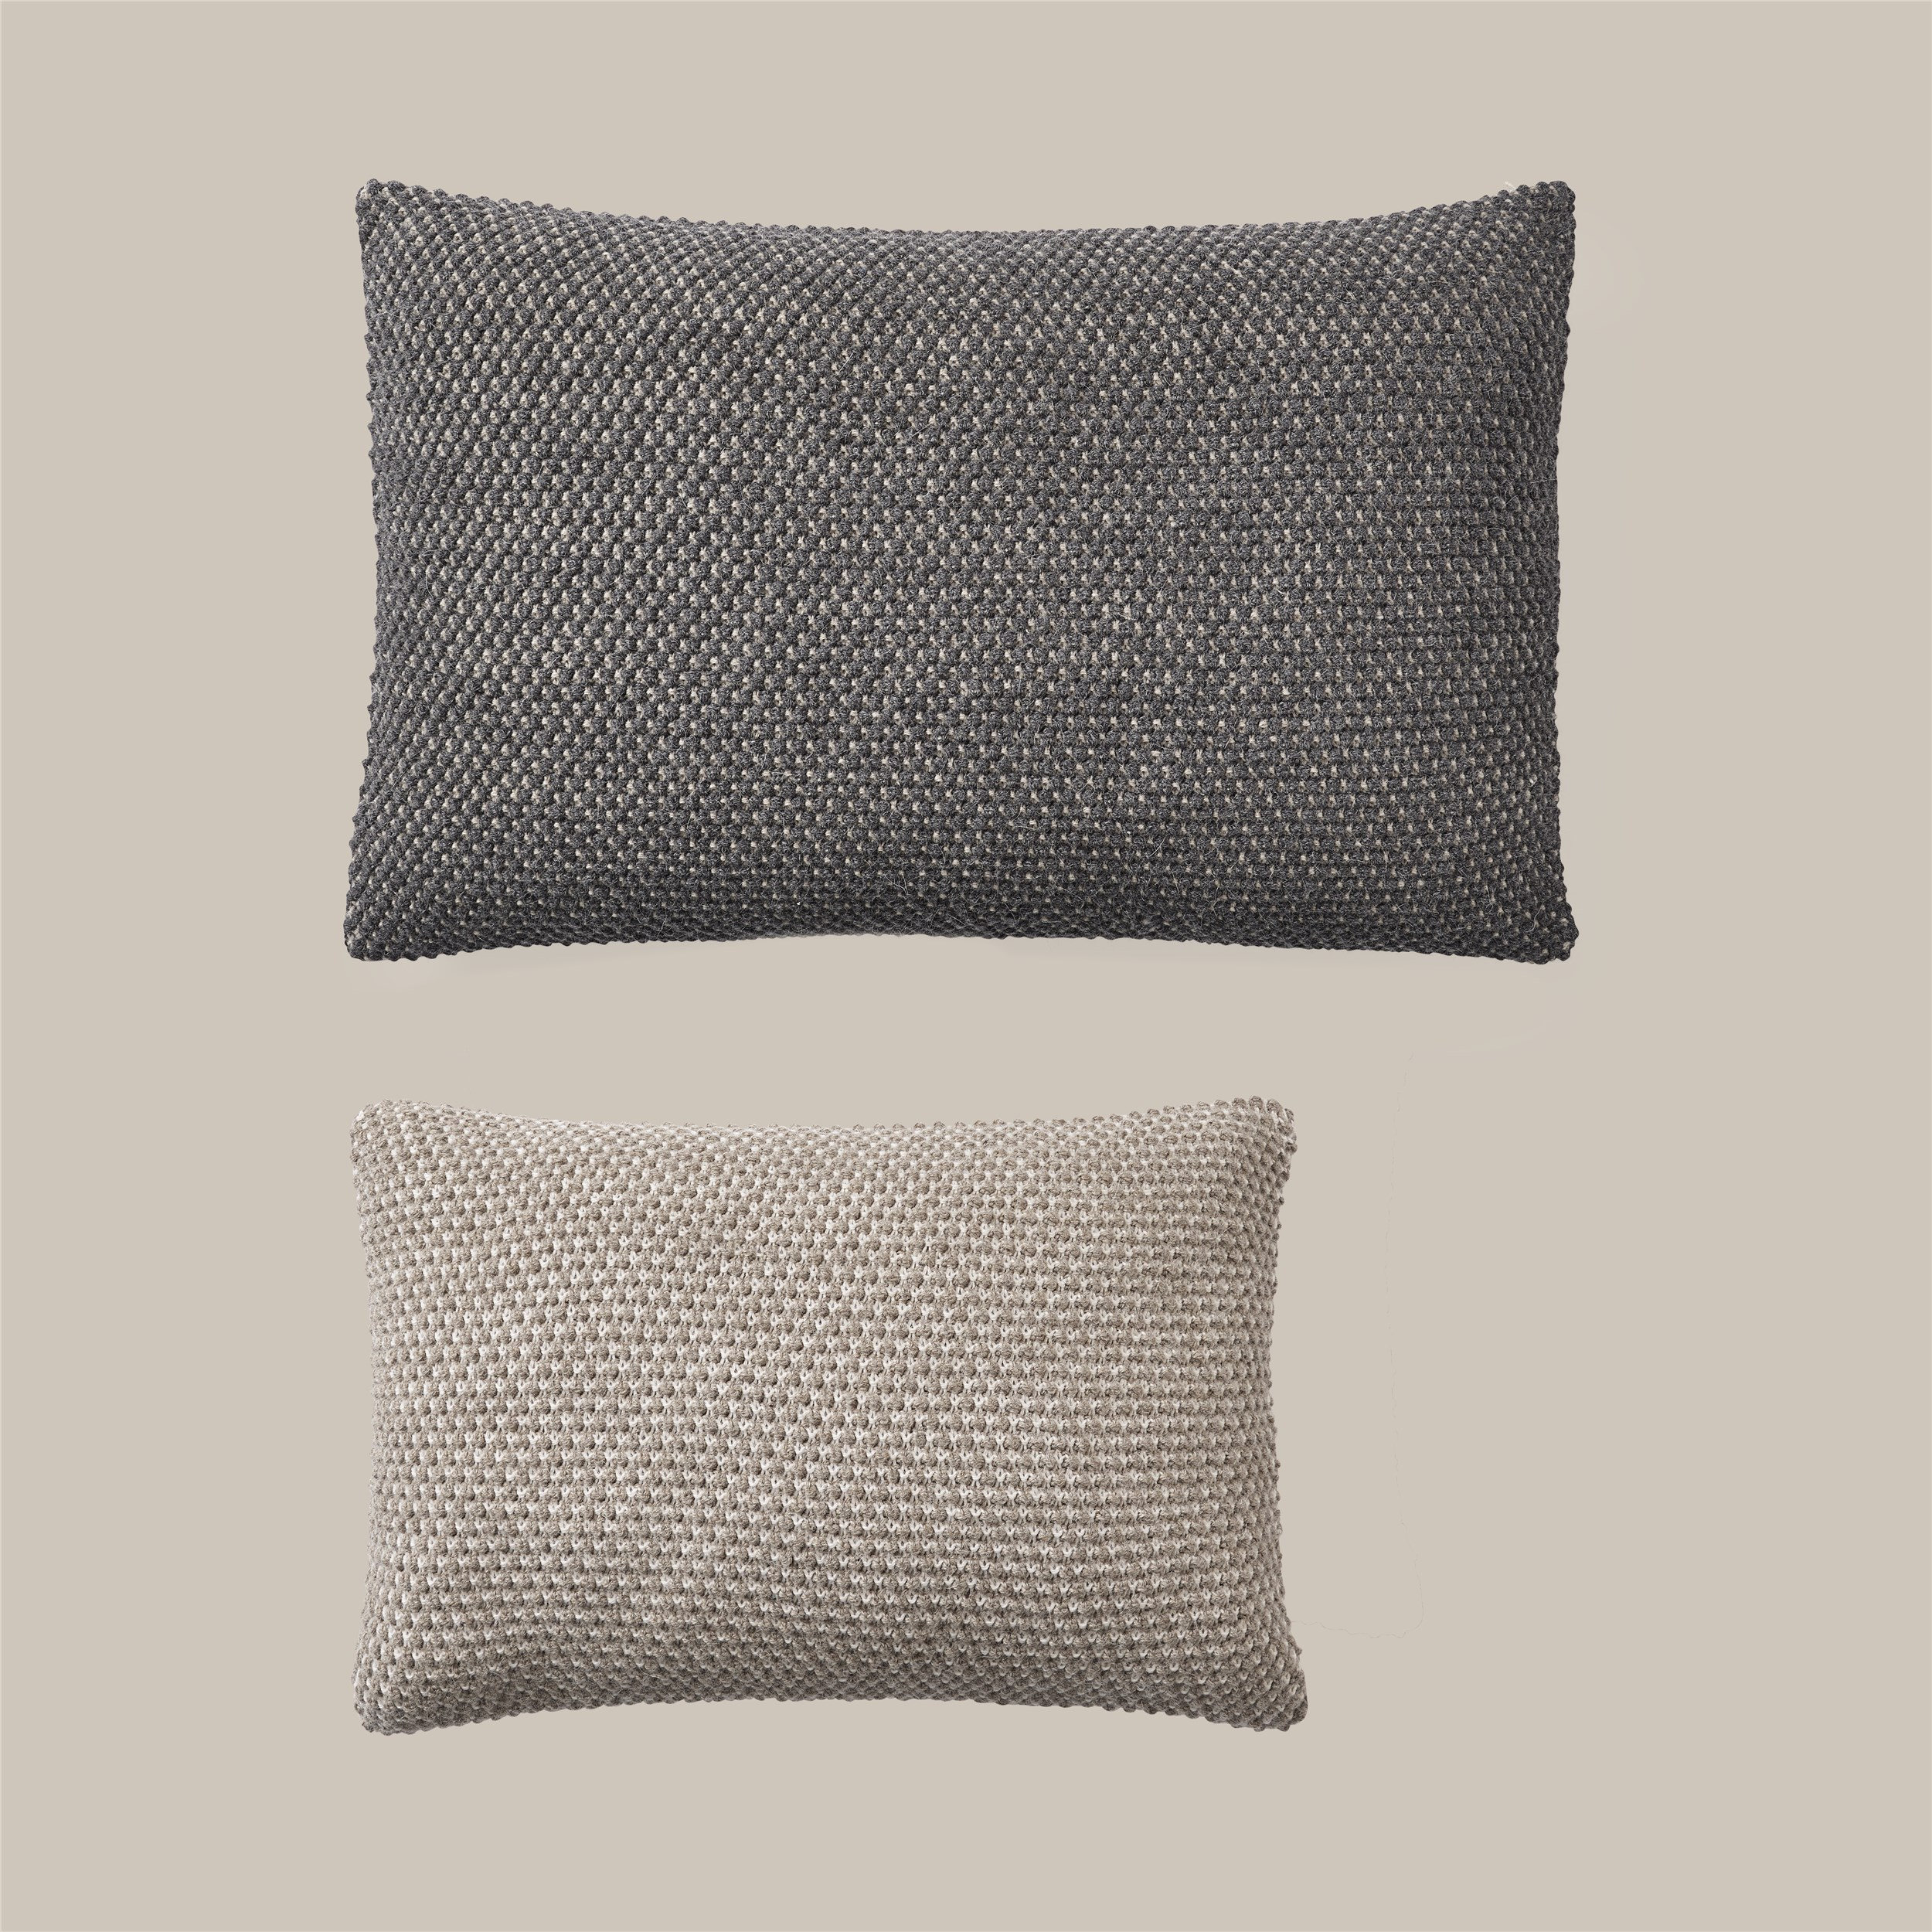 Twine cushion 80x50 dark grey